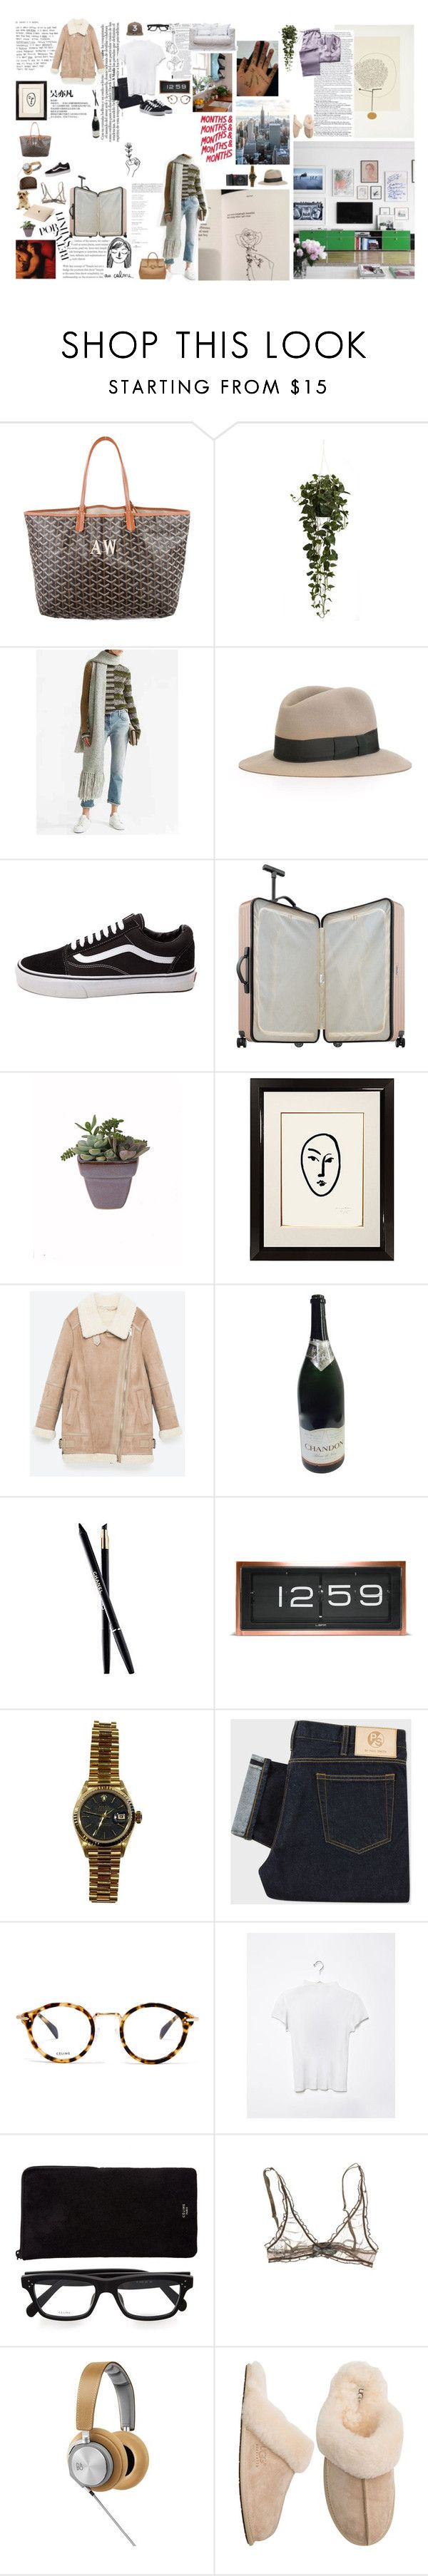 """""""lu-ci-dity, come back to me"""" by angeladylovely ❤ liked on Polyvore featuring Twenty, Goyard, Nearly Natural, Acne Studios, Hermès, Versace, Vans, Munn Works, Leica and Chanel"""